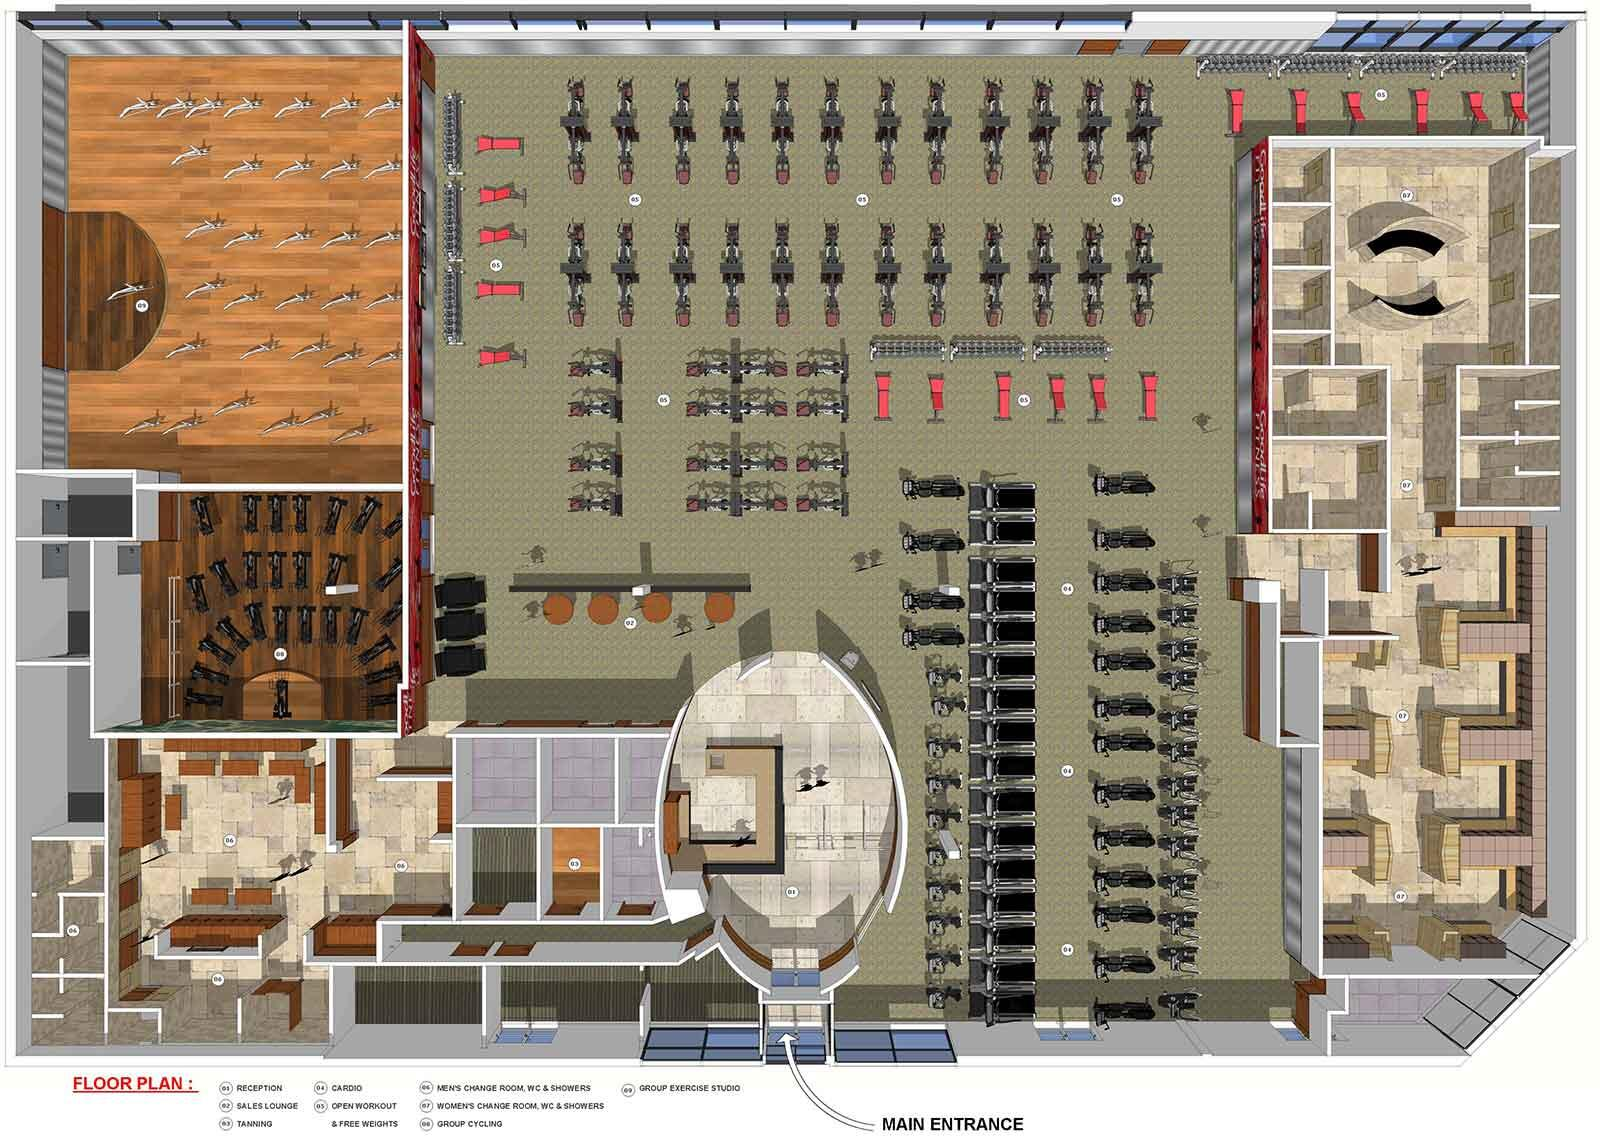 Goodlife fitness on twitter take a look at the floor for Gym floor plan examples